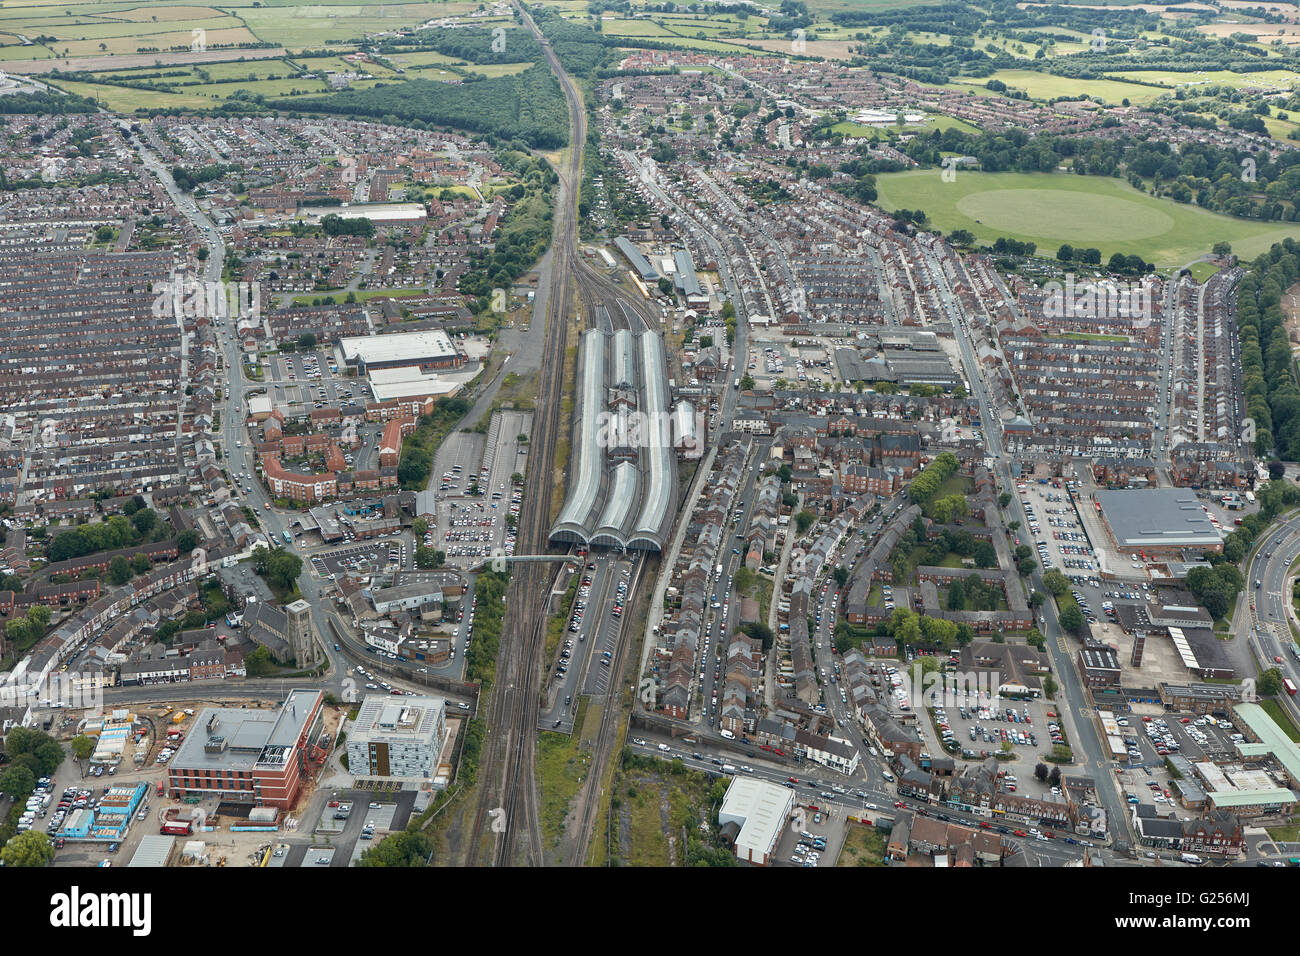 An aerial view of the town of Darlington, County Durham, centred around the Railway Station - Stock Image